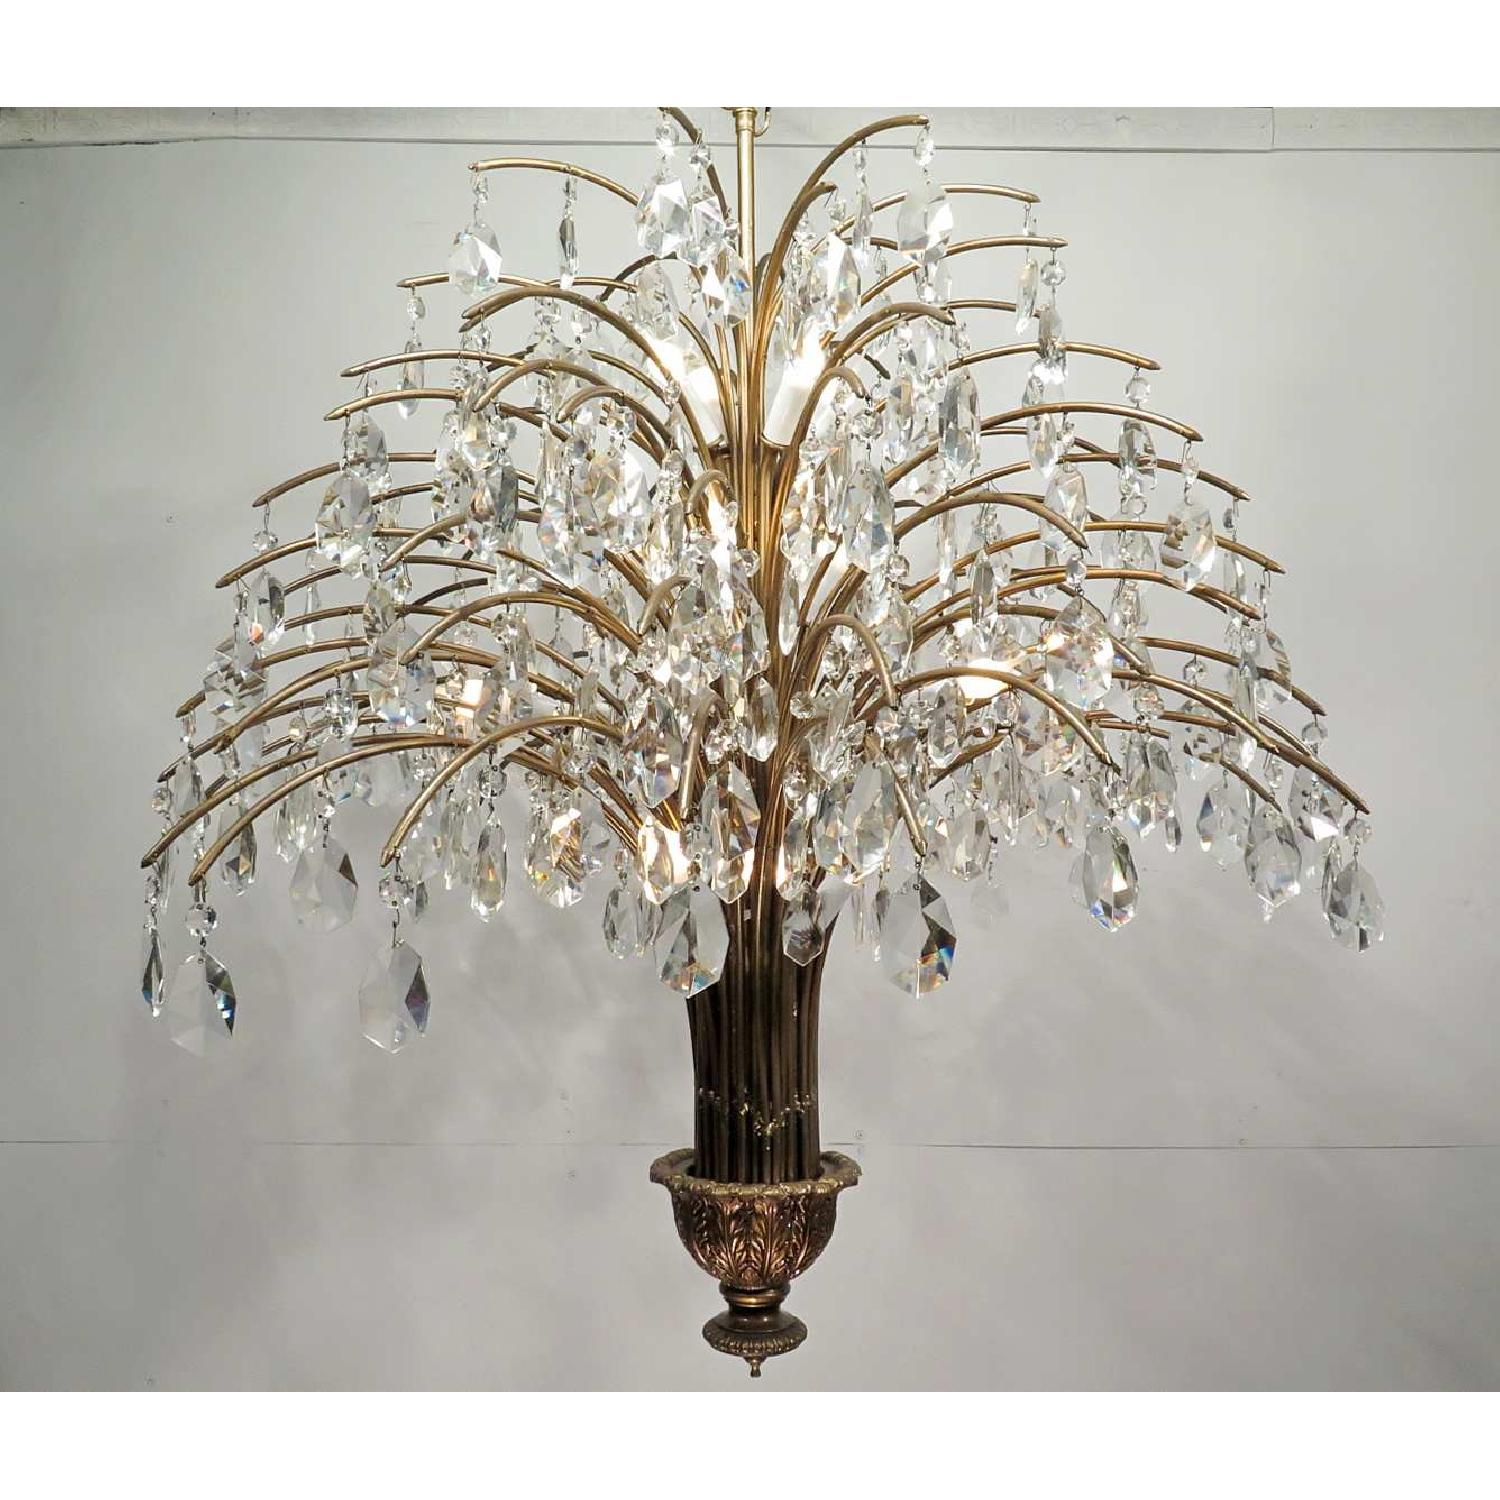 Antique Vintage Mid-Century Grand Chandelier Fixture w/ Crystals - image-1